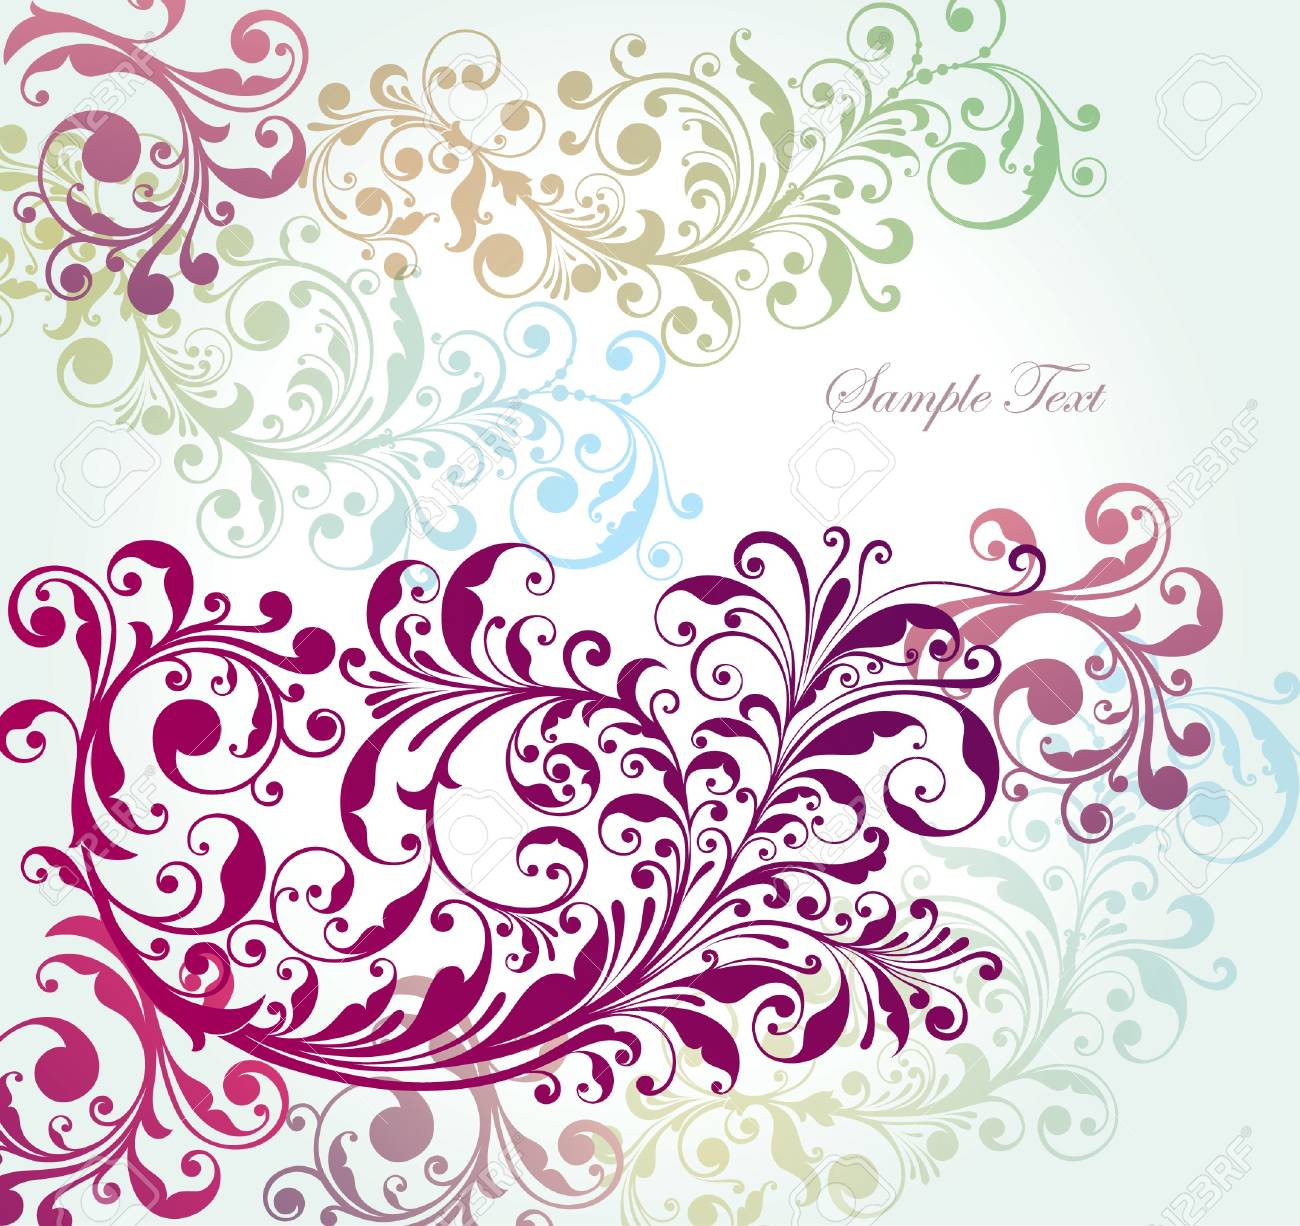 background with a flower pattern. Stock Vector - 9821592